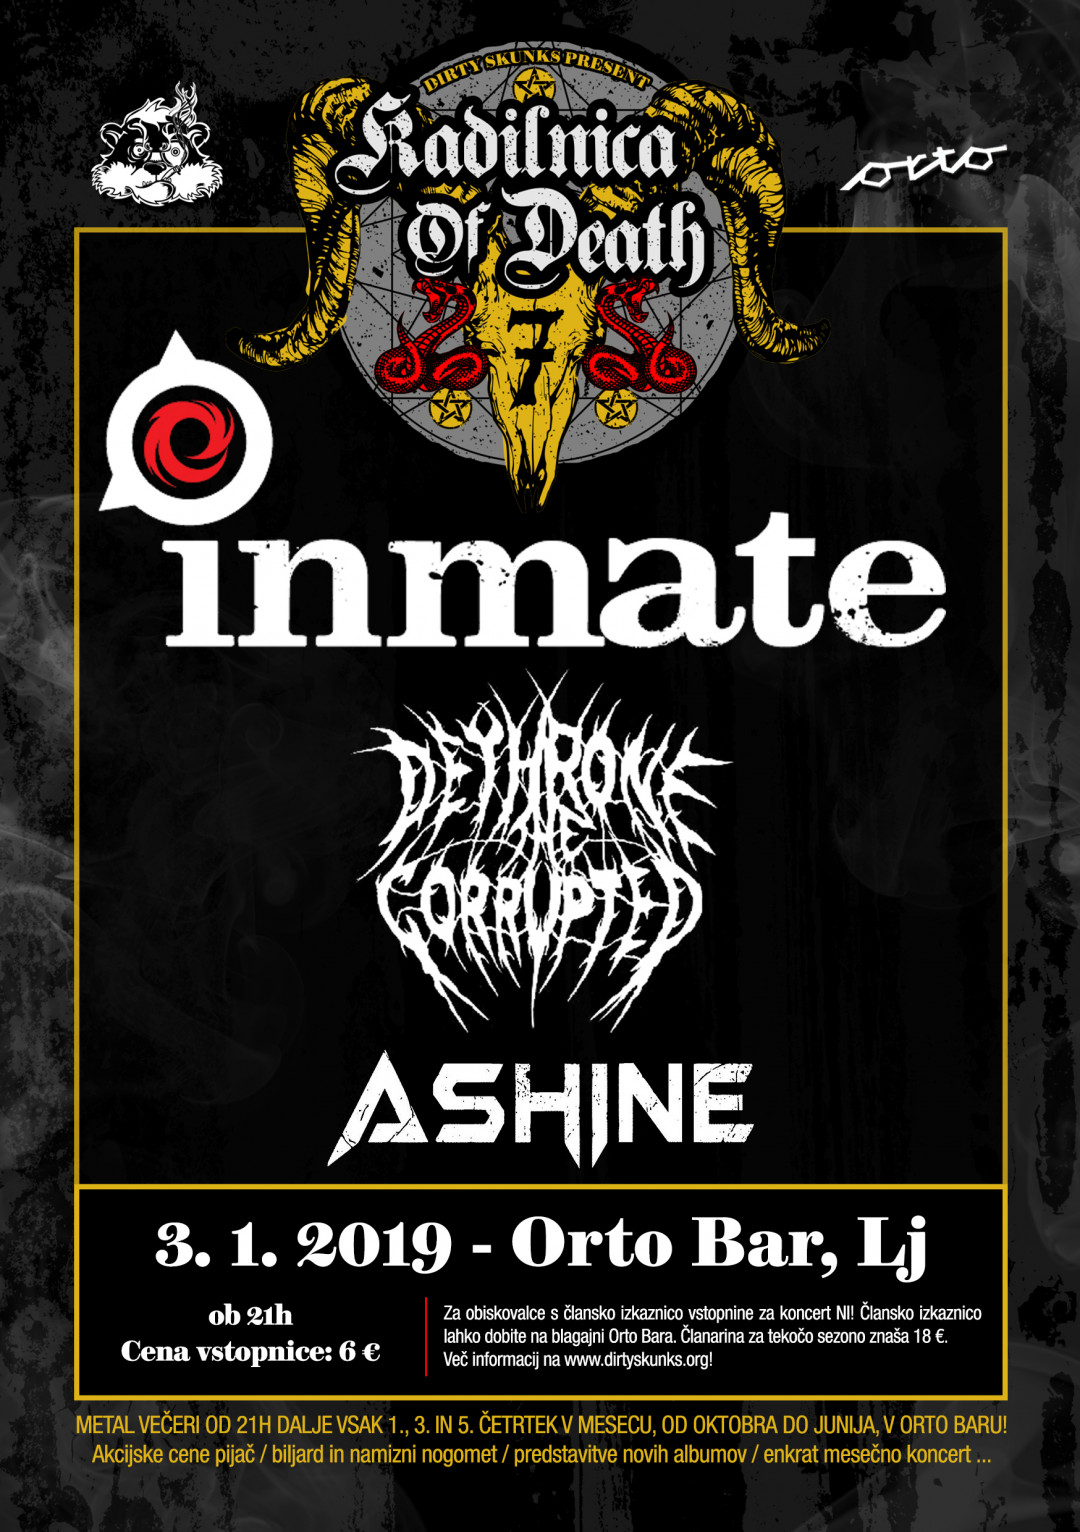 Inmate (Si), Dethrone the Corrupted (Si), Ashine (Si)